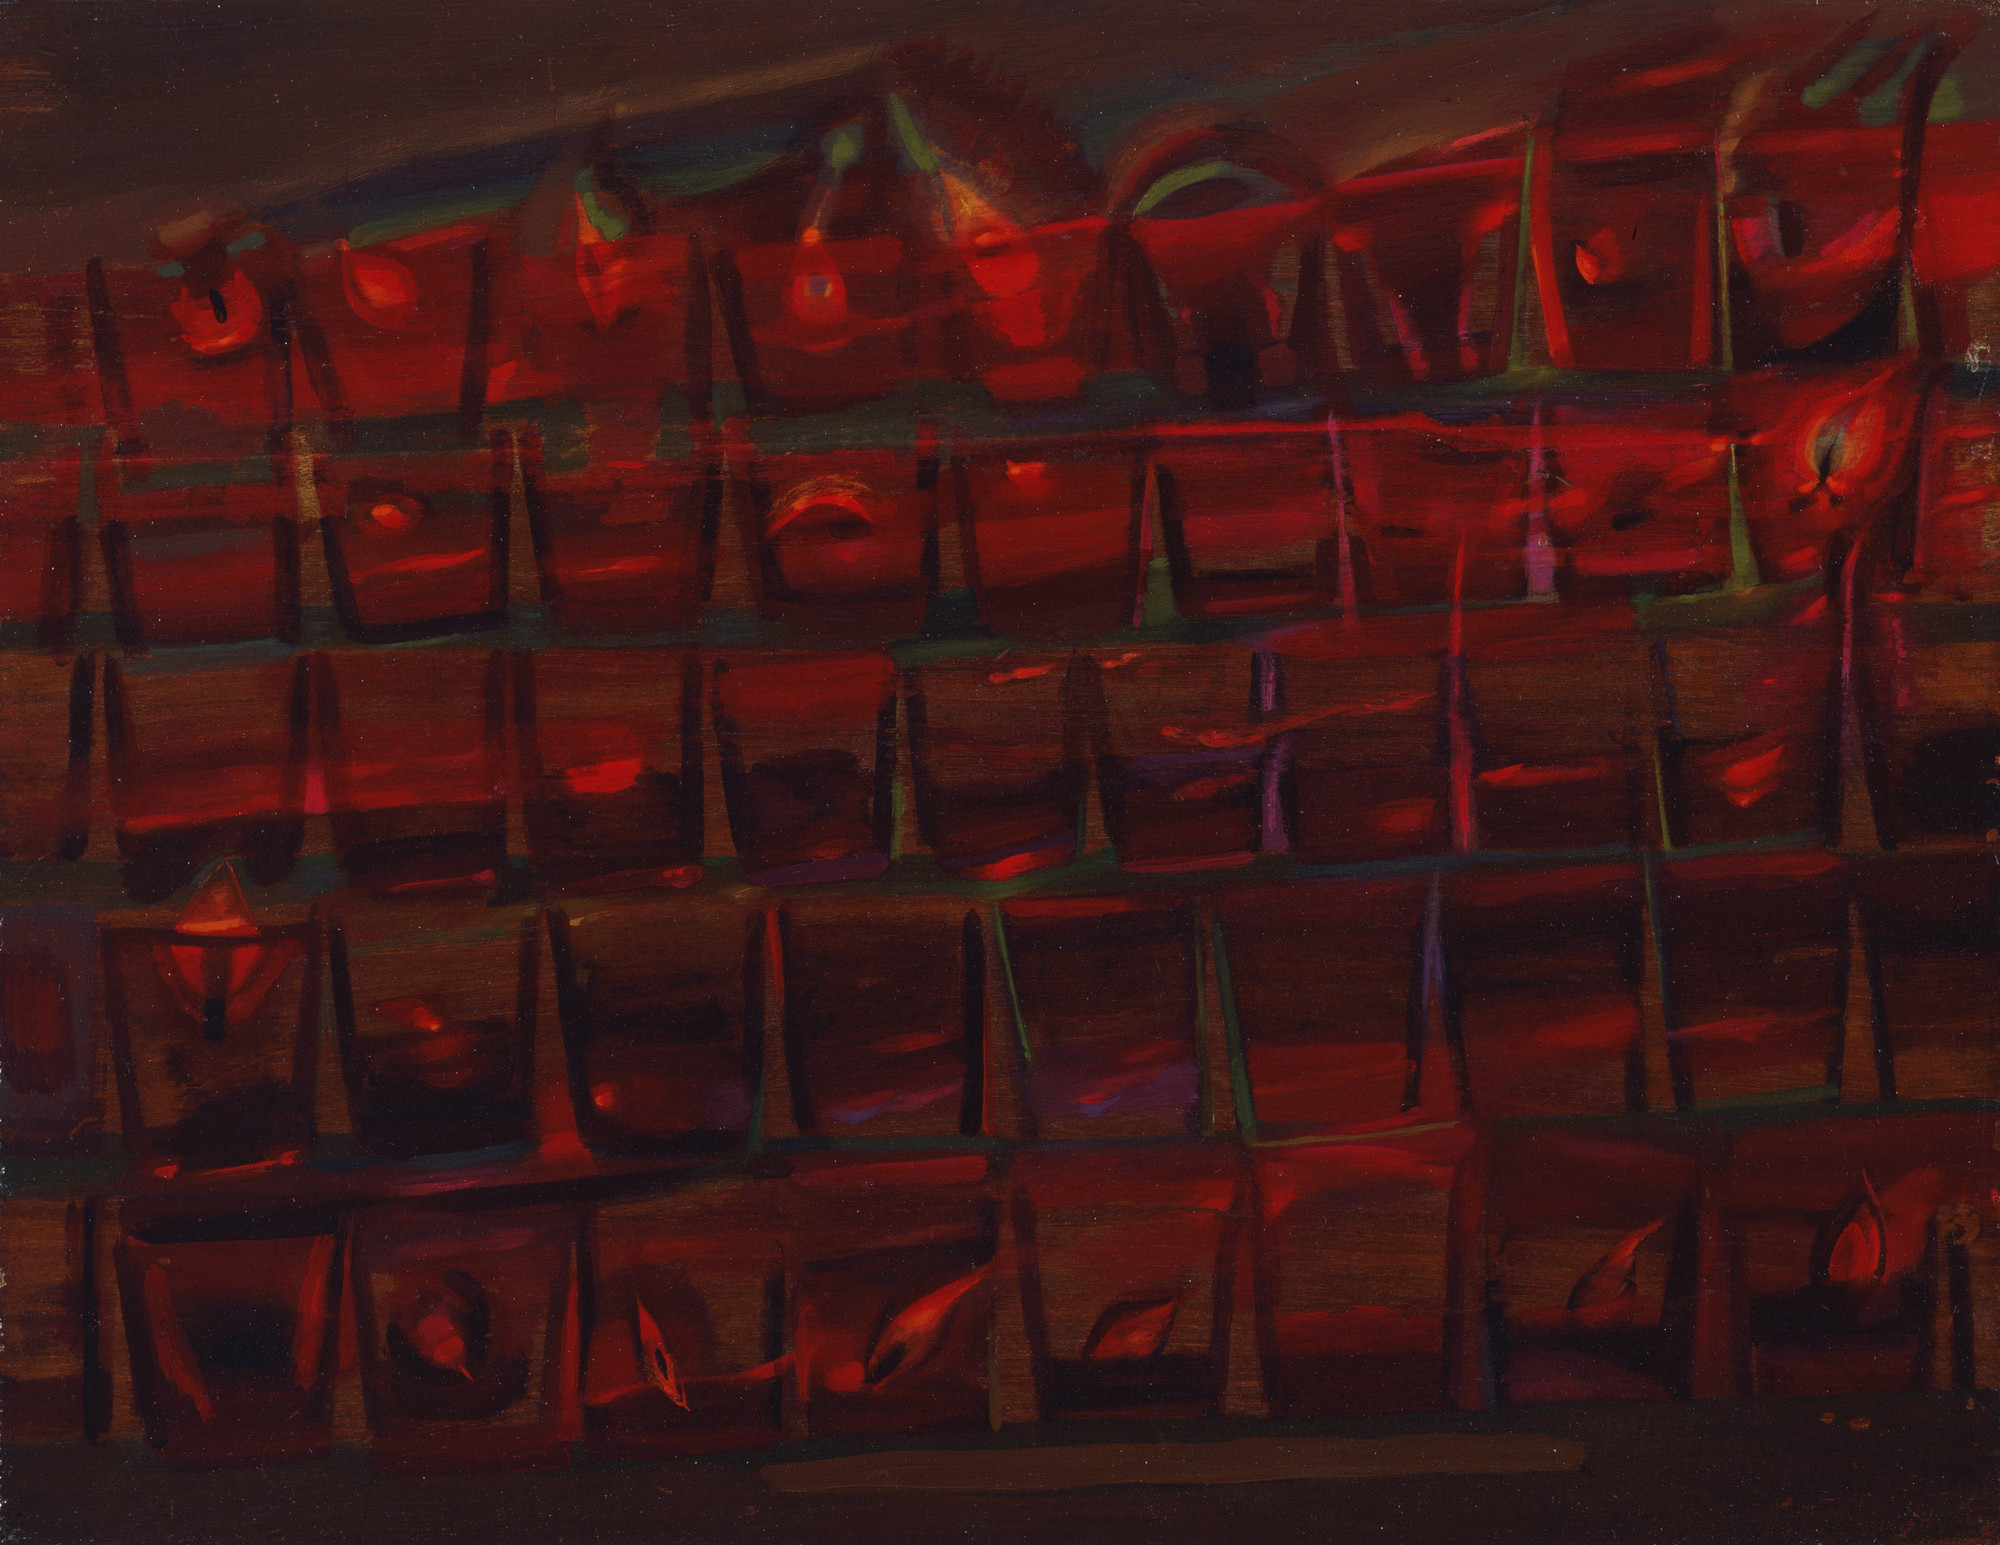 Loren MacIver. Red Votive Lights. 1943